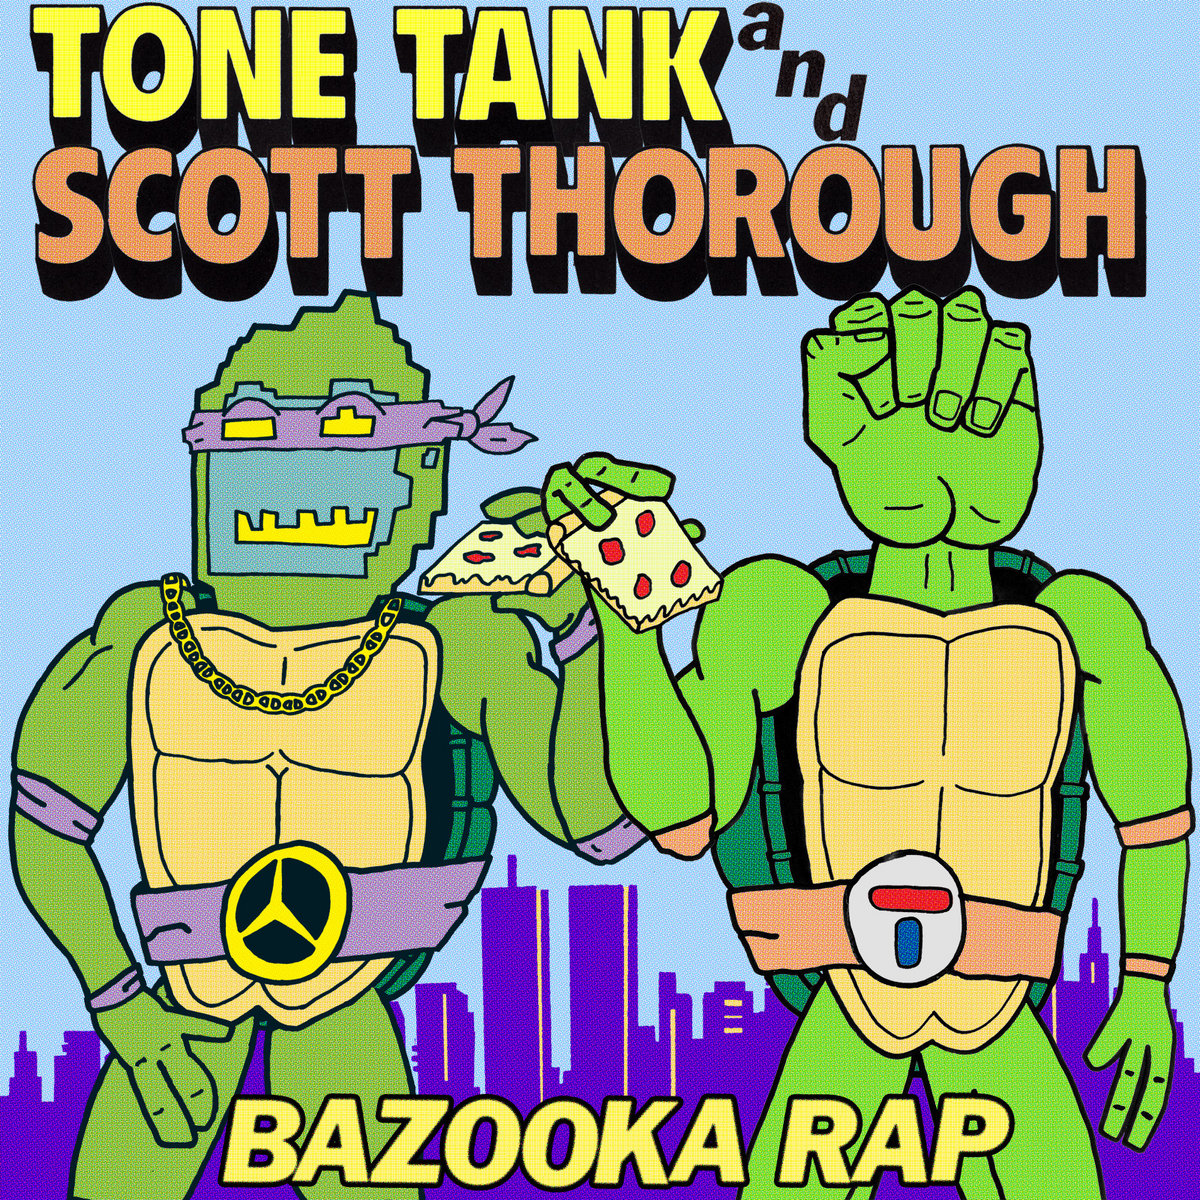 Album/Single Cover for the song Bazooka Rap by Tone Tank and Scott Thorough